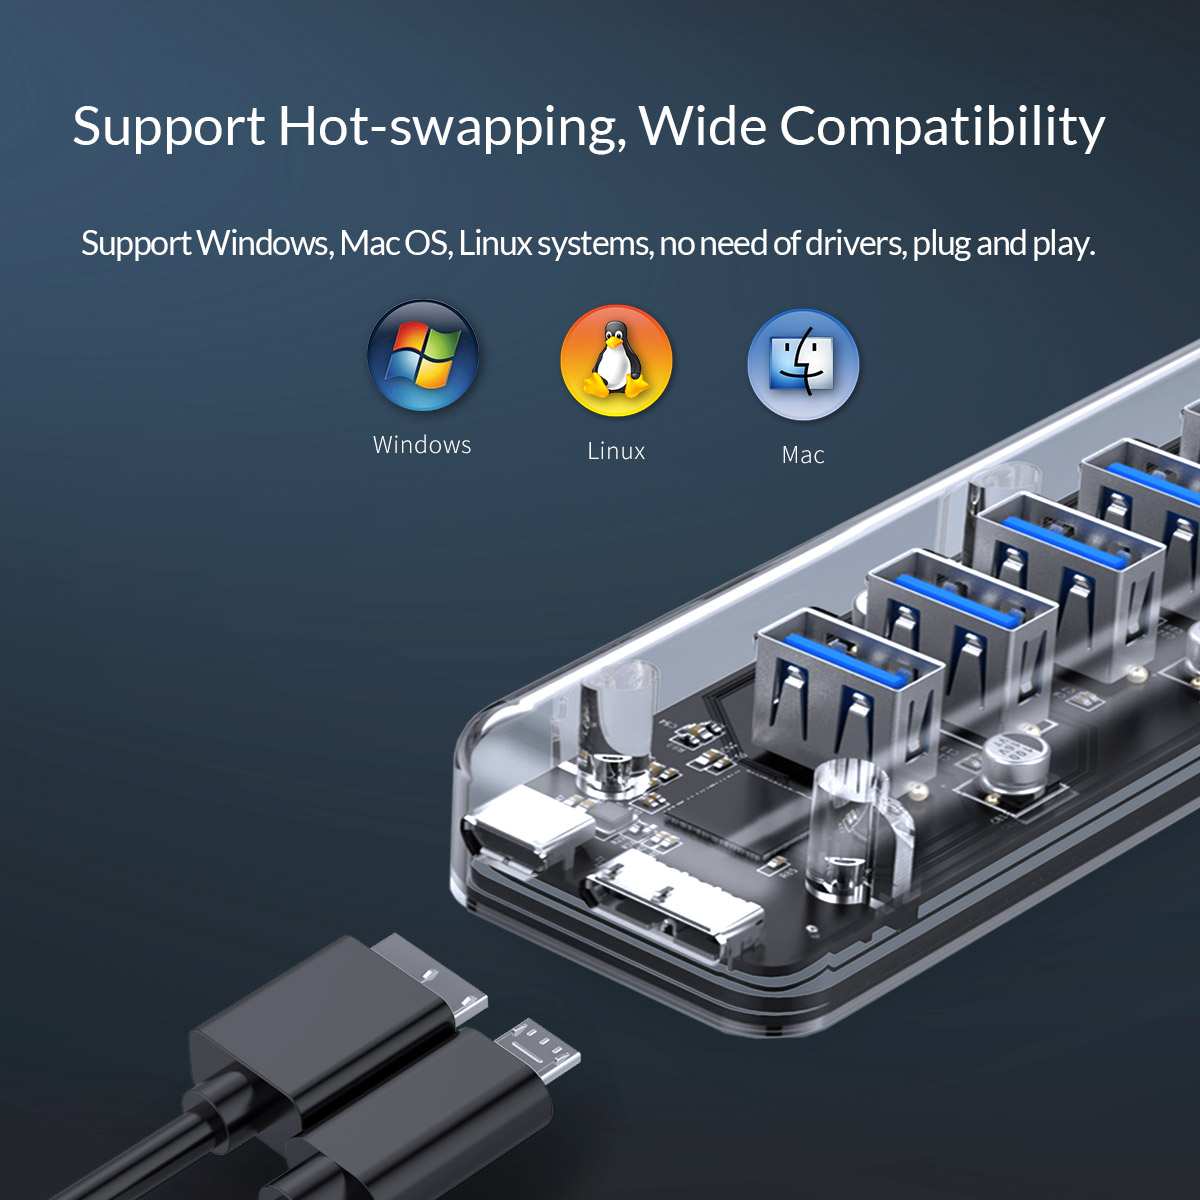 support Hot-swapping wide compatibility